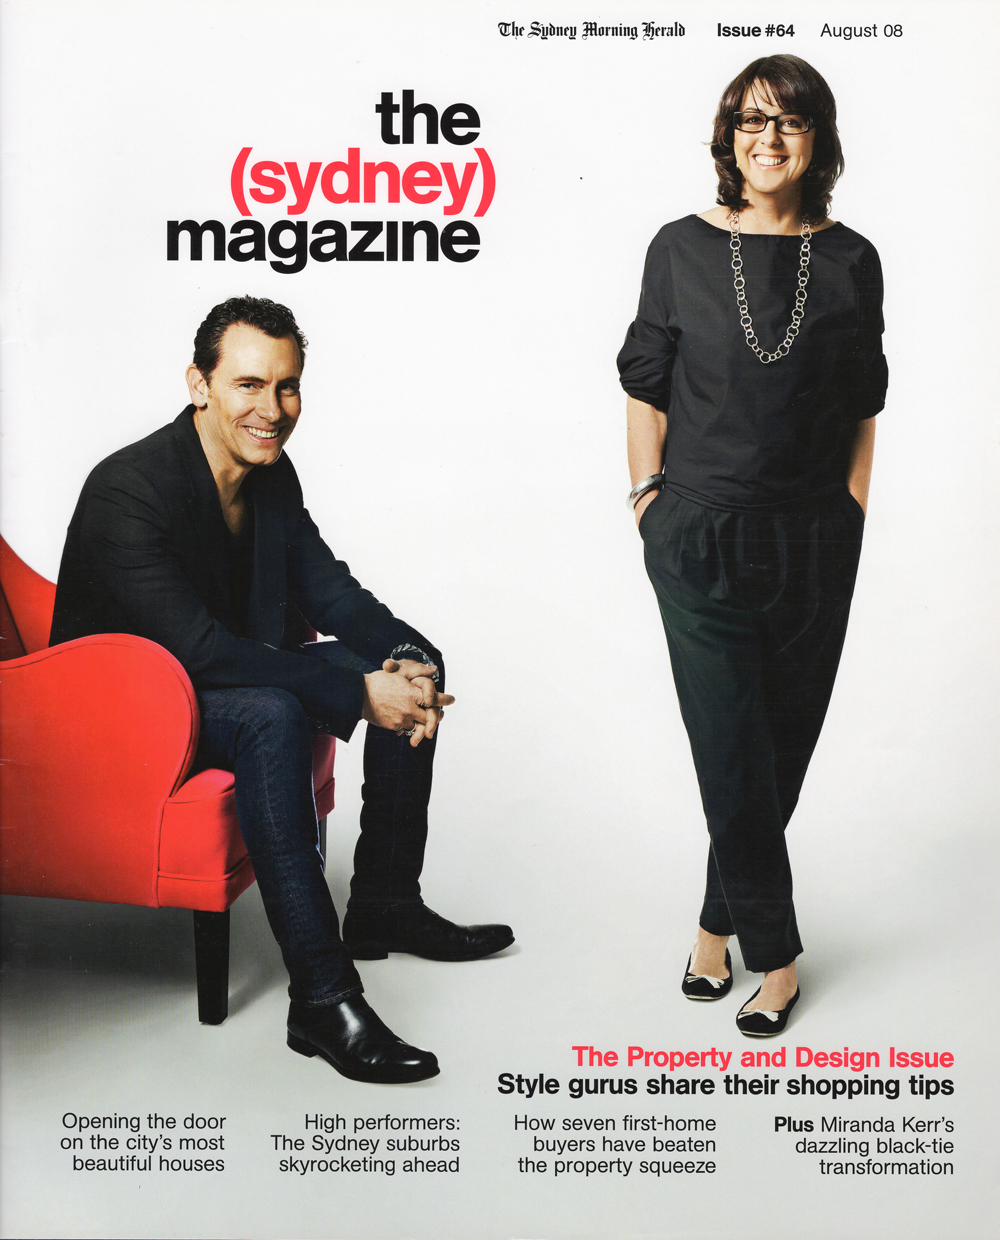 the (sydney) magazine August 2008 cover (Point Piper).jpg